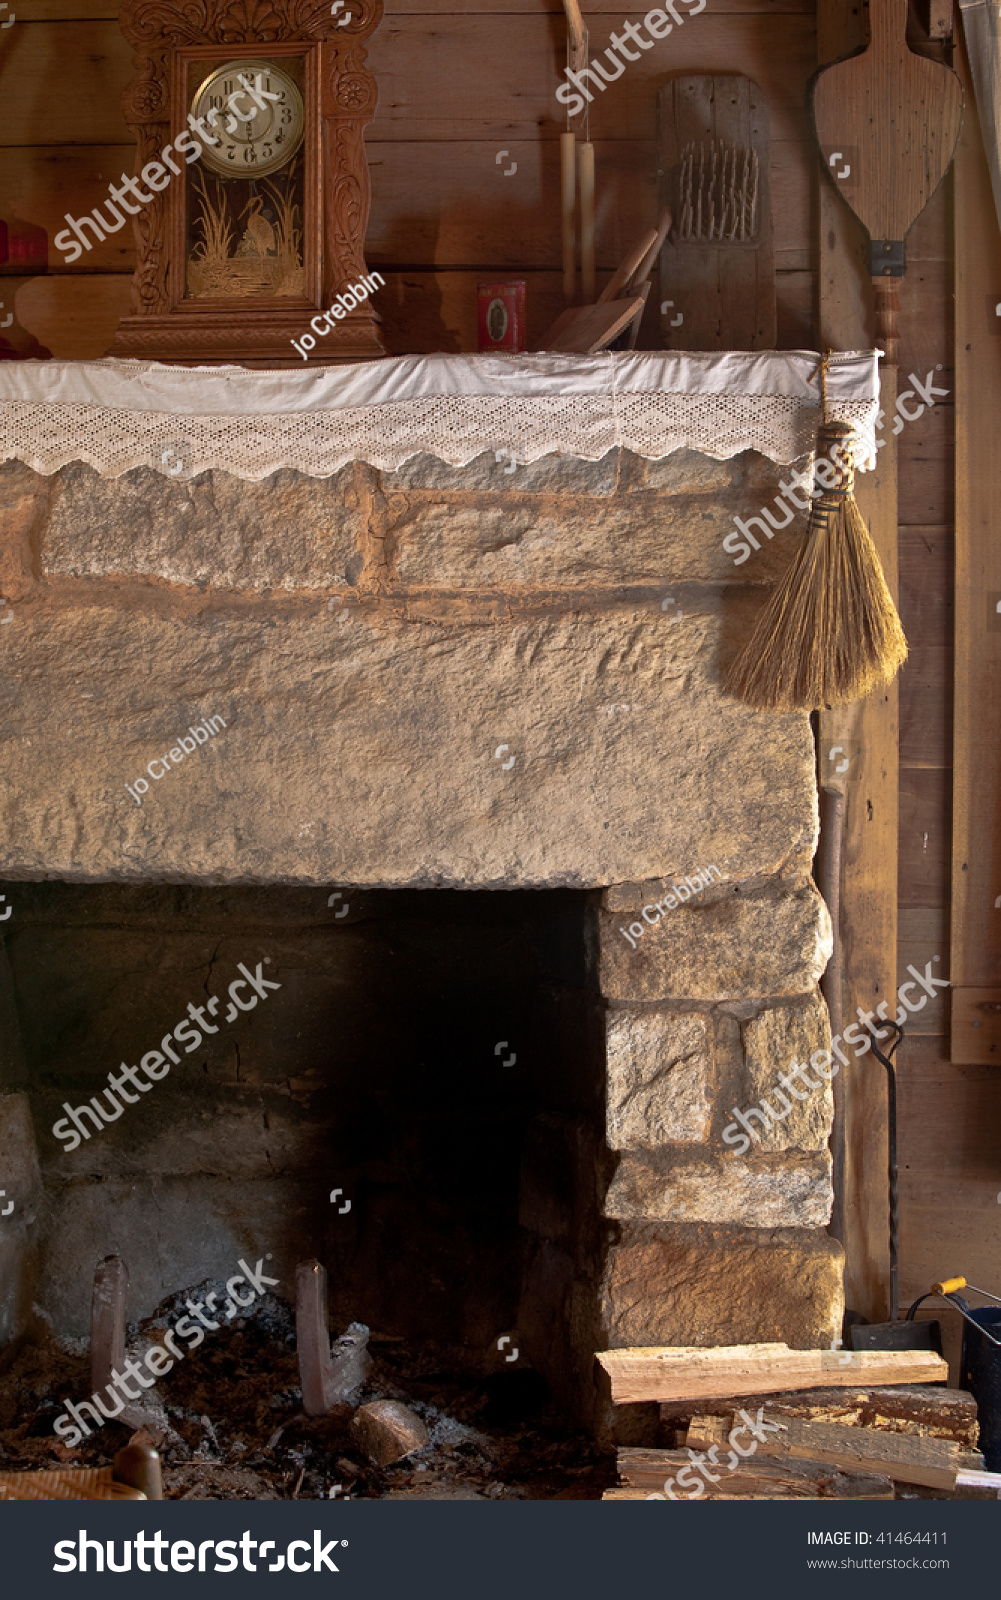 Old Fashioned Fireplace Antique Tools Stock Photo 41464411